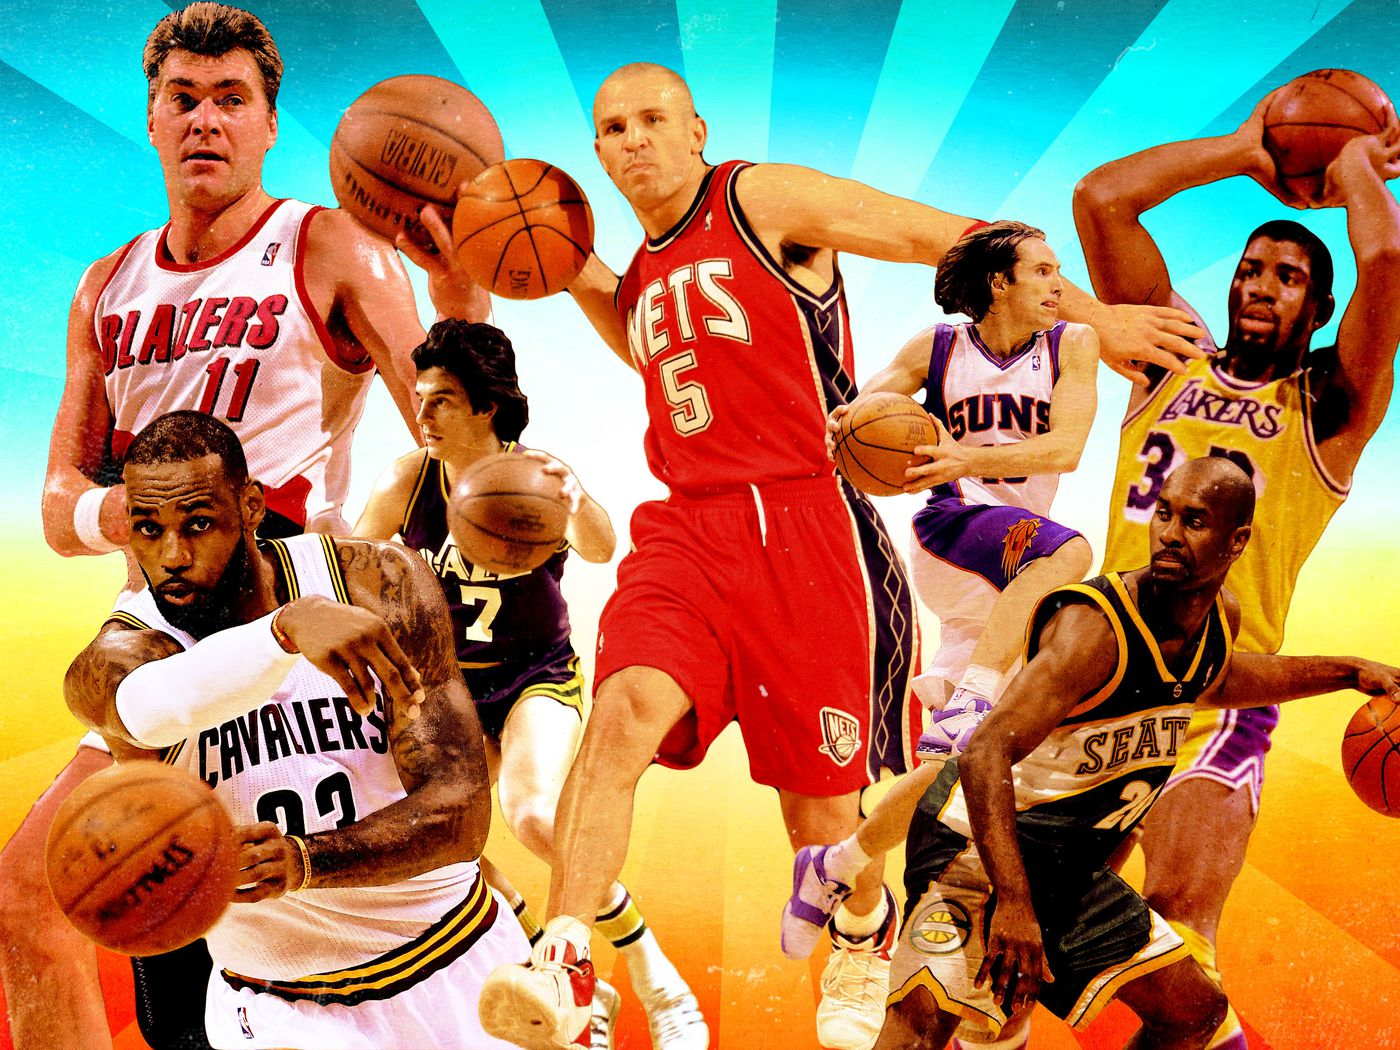 Ringer Nba The Our In Passers Favorite History lc1Fu3TKJ